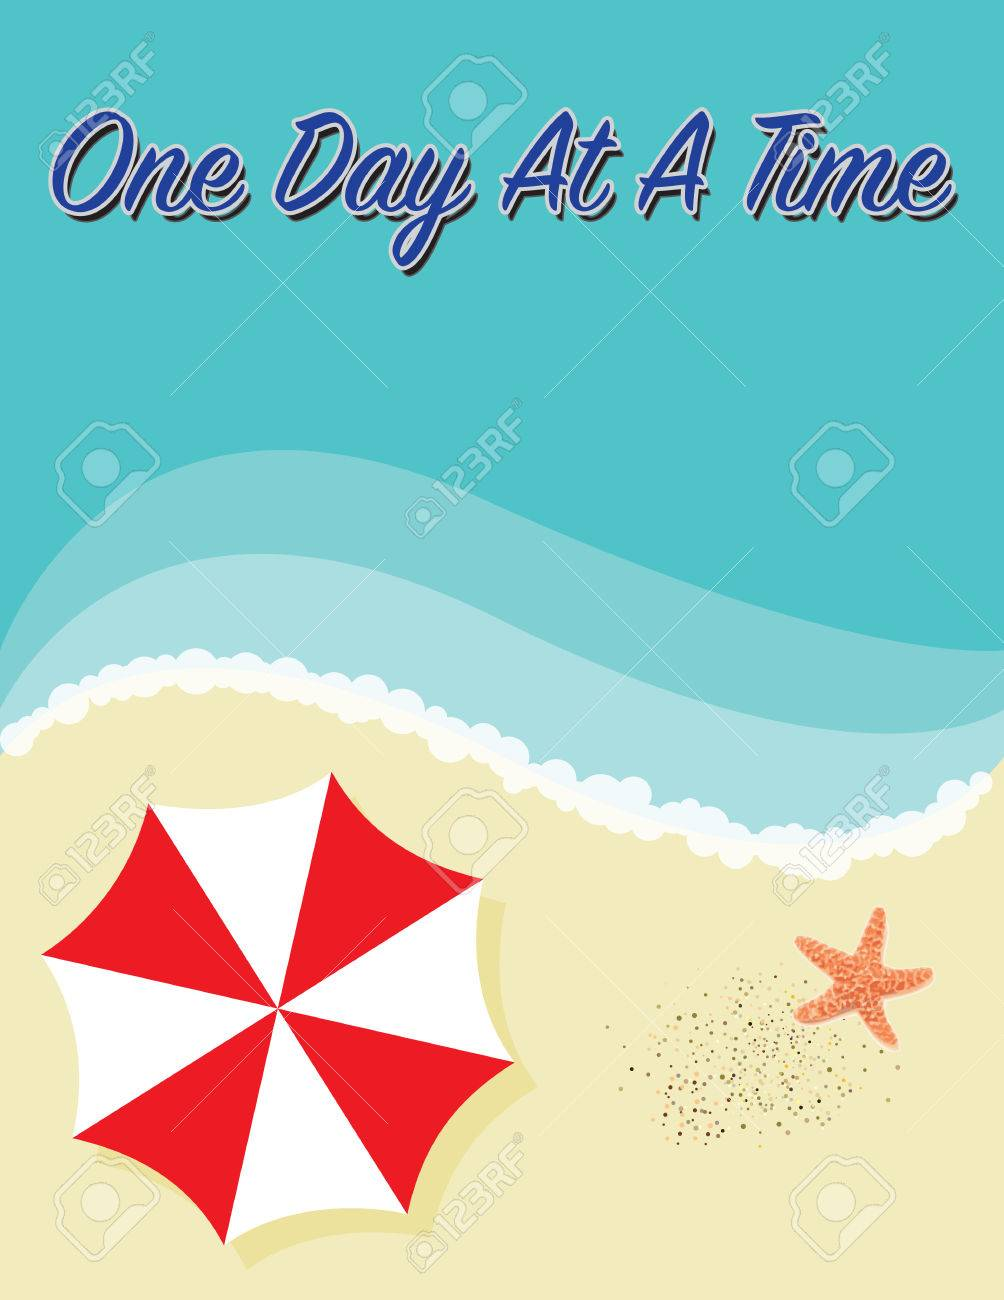 One Day At A Time Famous And Inspirational Quote Stock Photo